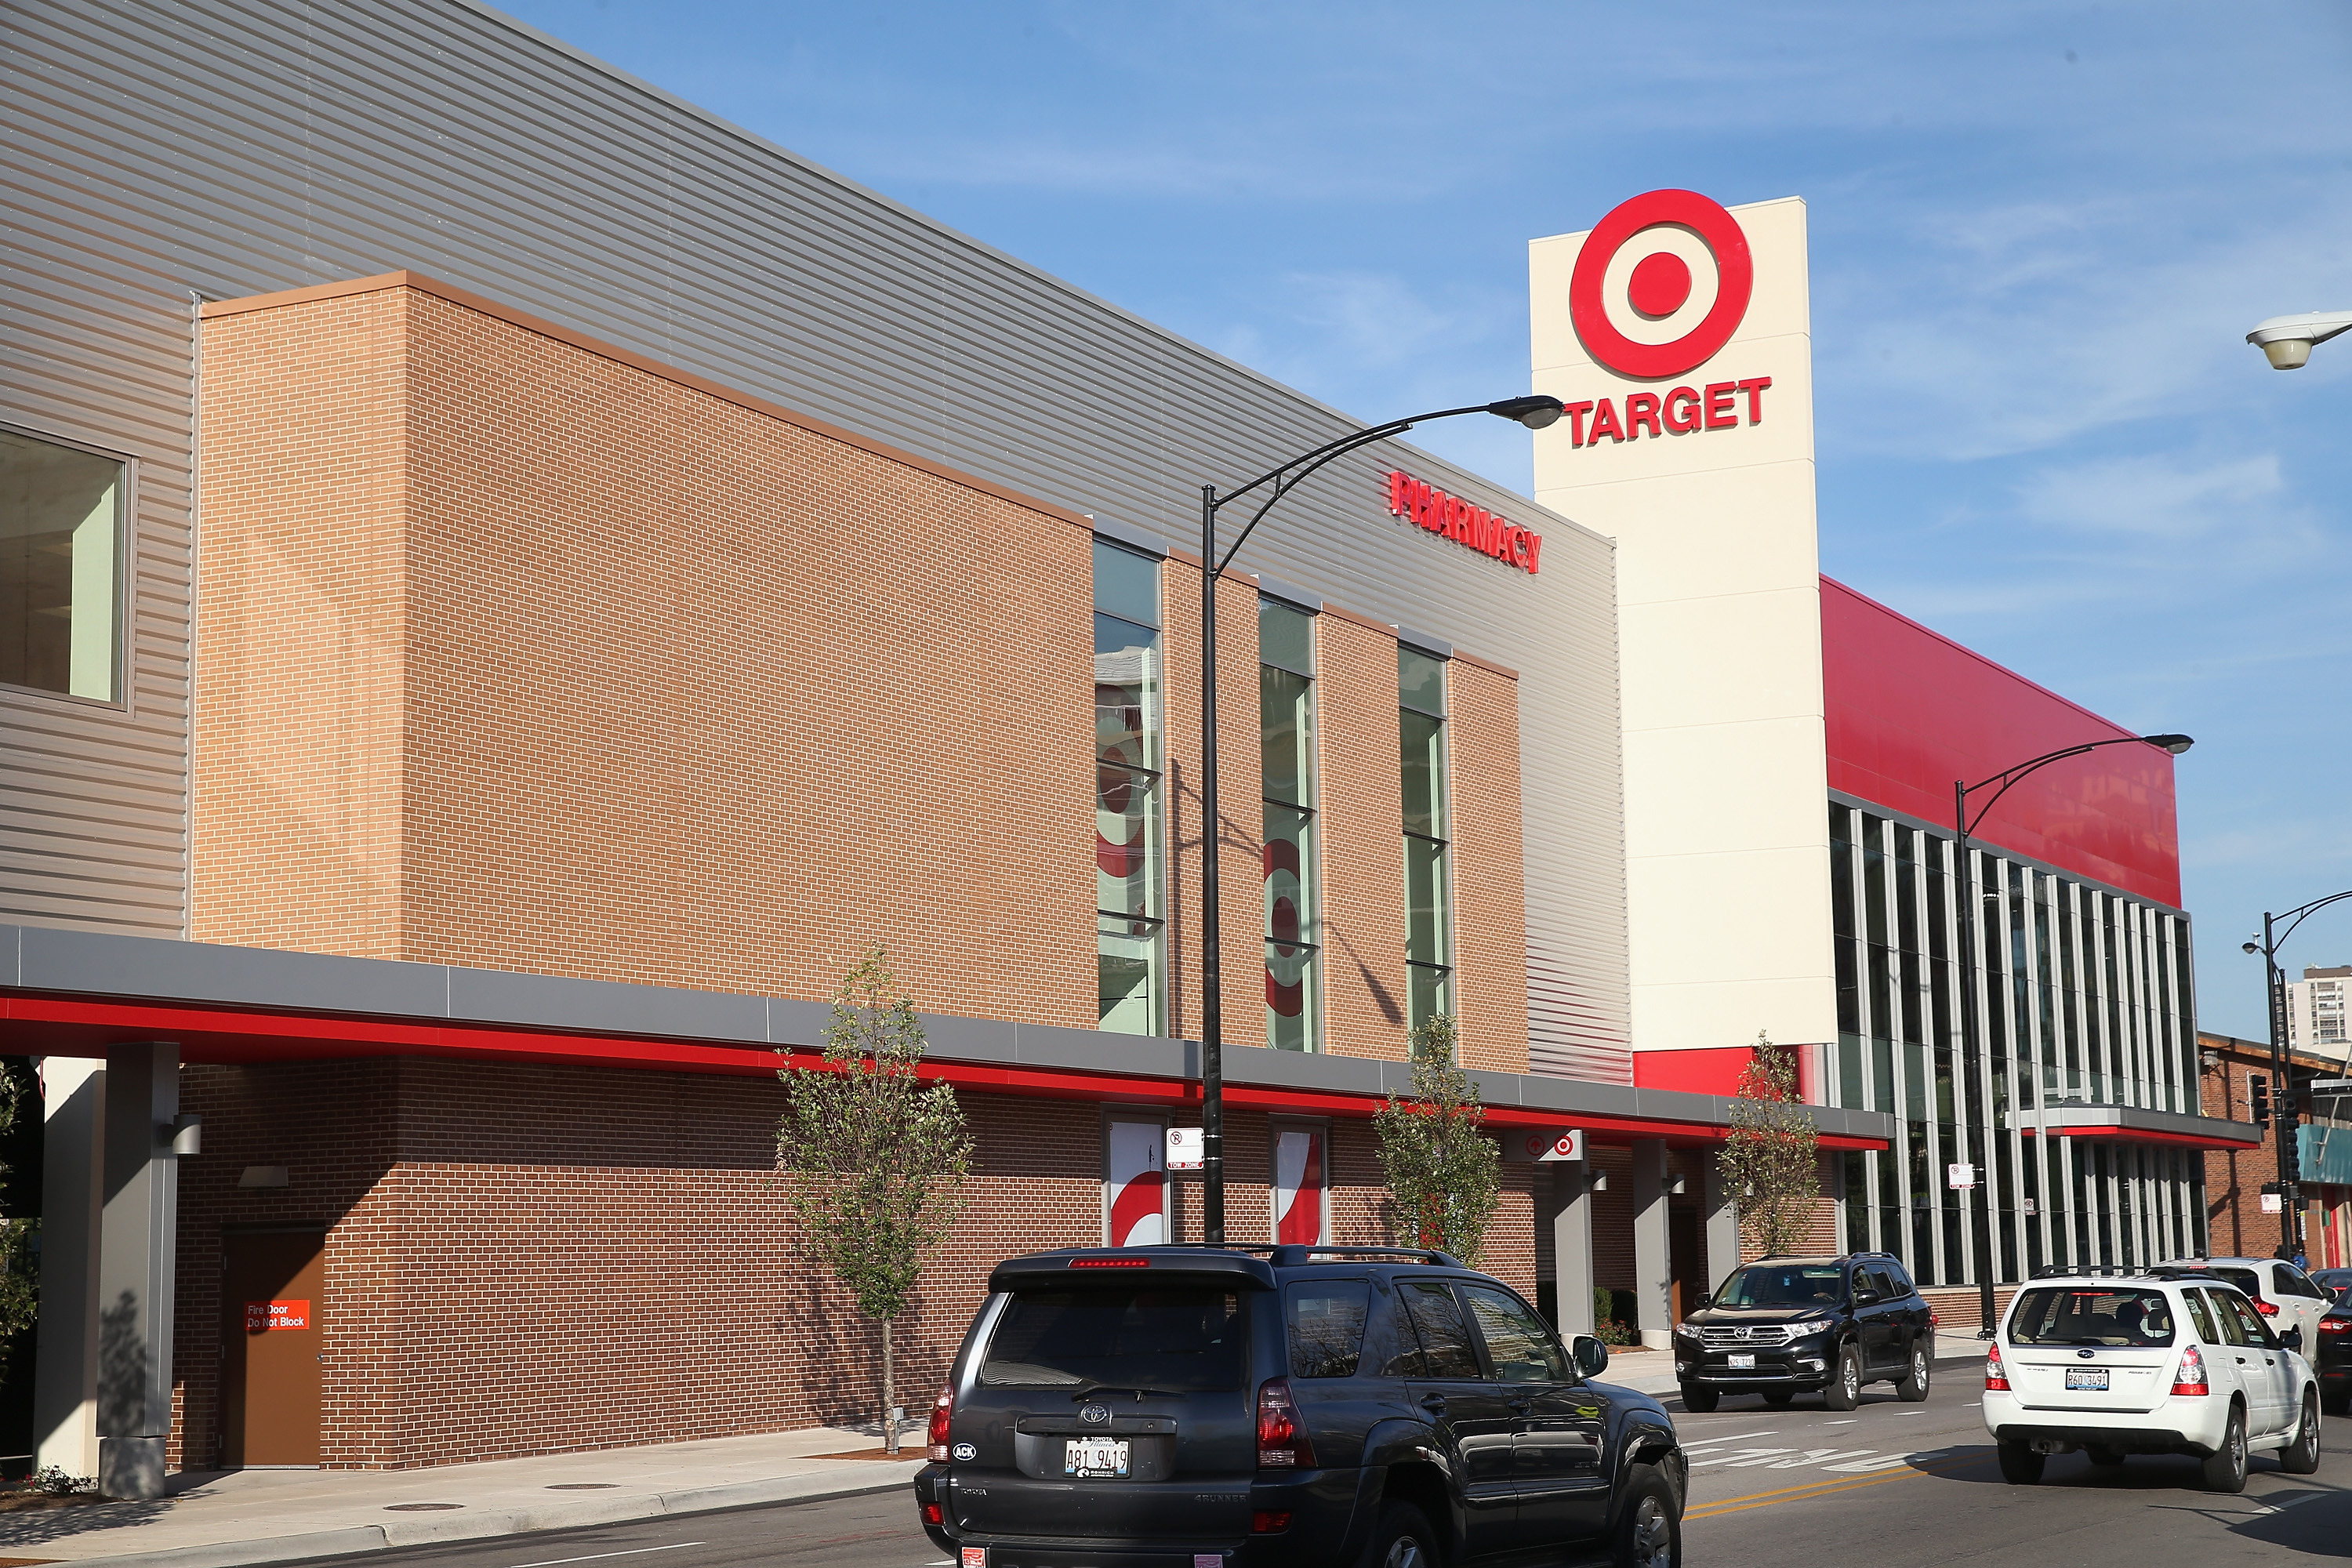 A newly-opened Target store built on land where the notorious Cabrini-Green housing project once stood is shown on October 10, 2013 in Chicago, Illinois.